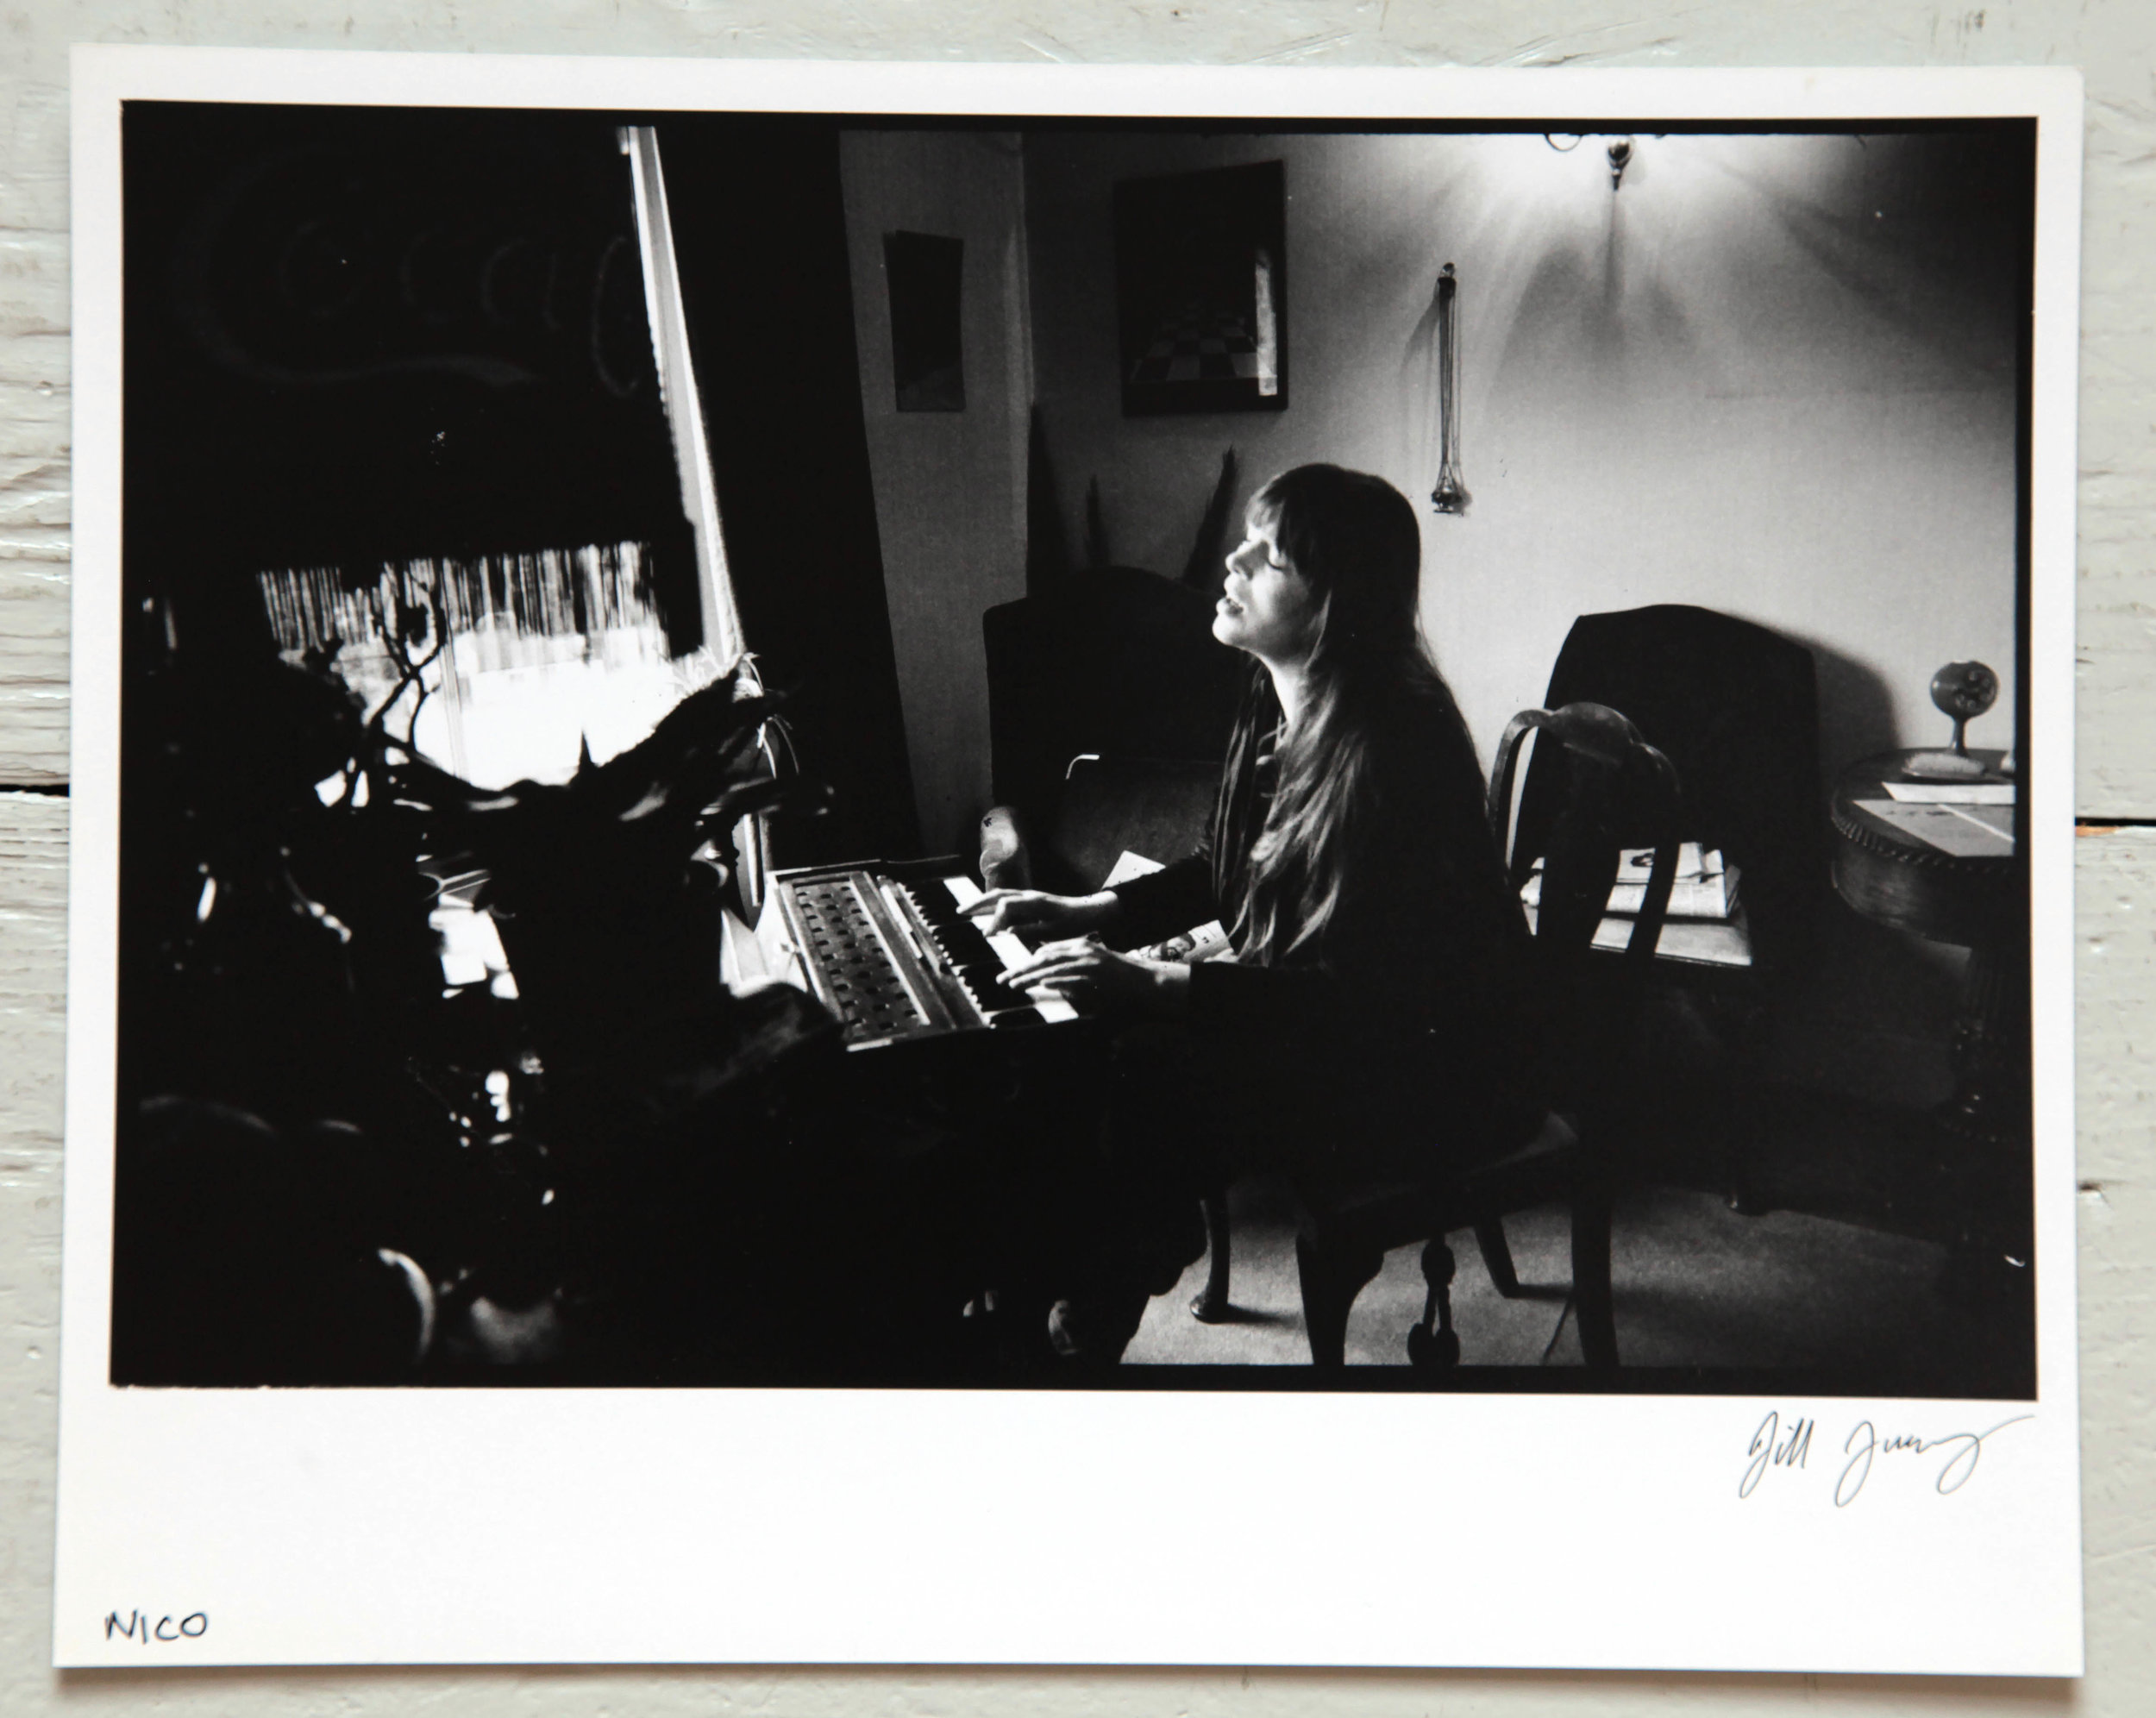 "£100 Unique 10"" x 8"" printer's proof: Nico, Hampstead, 1978. Signed by Jill Furmanovsky. - Donated by the founder of Rock Archive from her personal collection. This image was taken while the ex-Velvet Underground singer was rehearsing in a flat in London and accompanied a Sounds interview in April 1978."